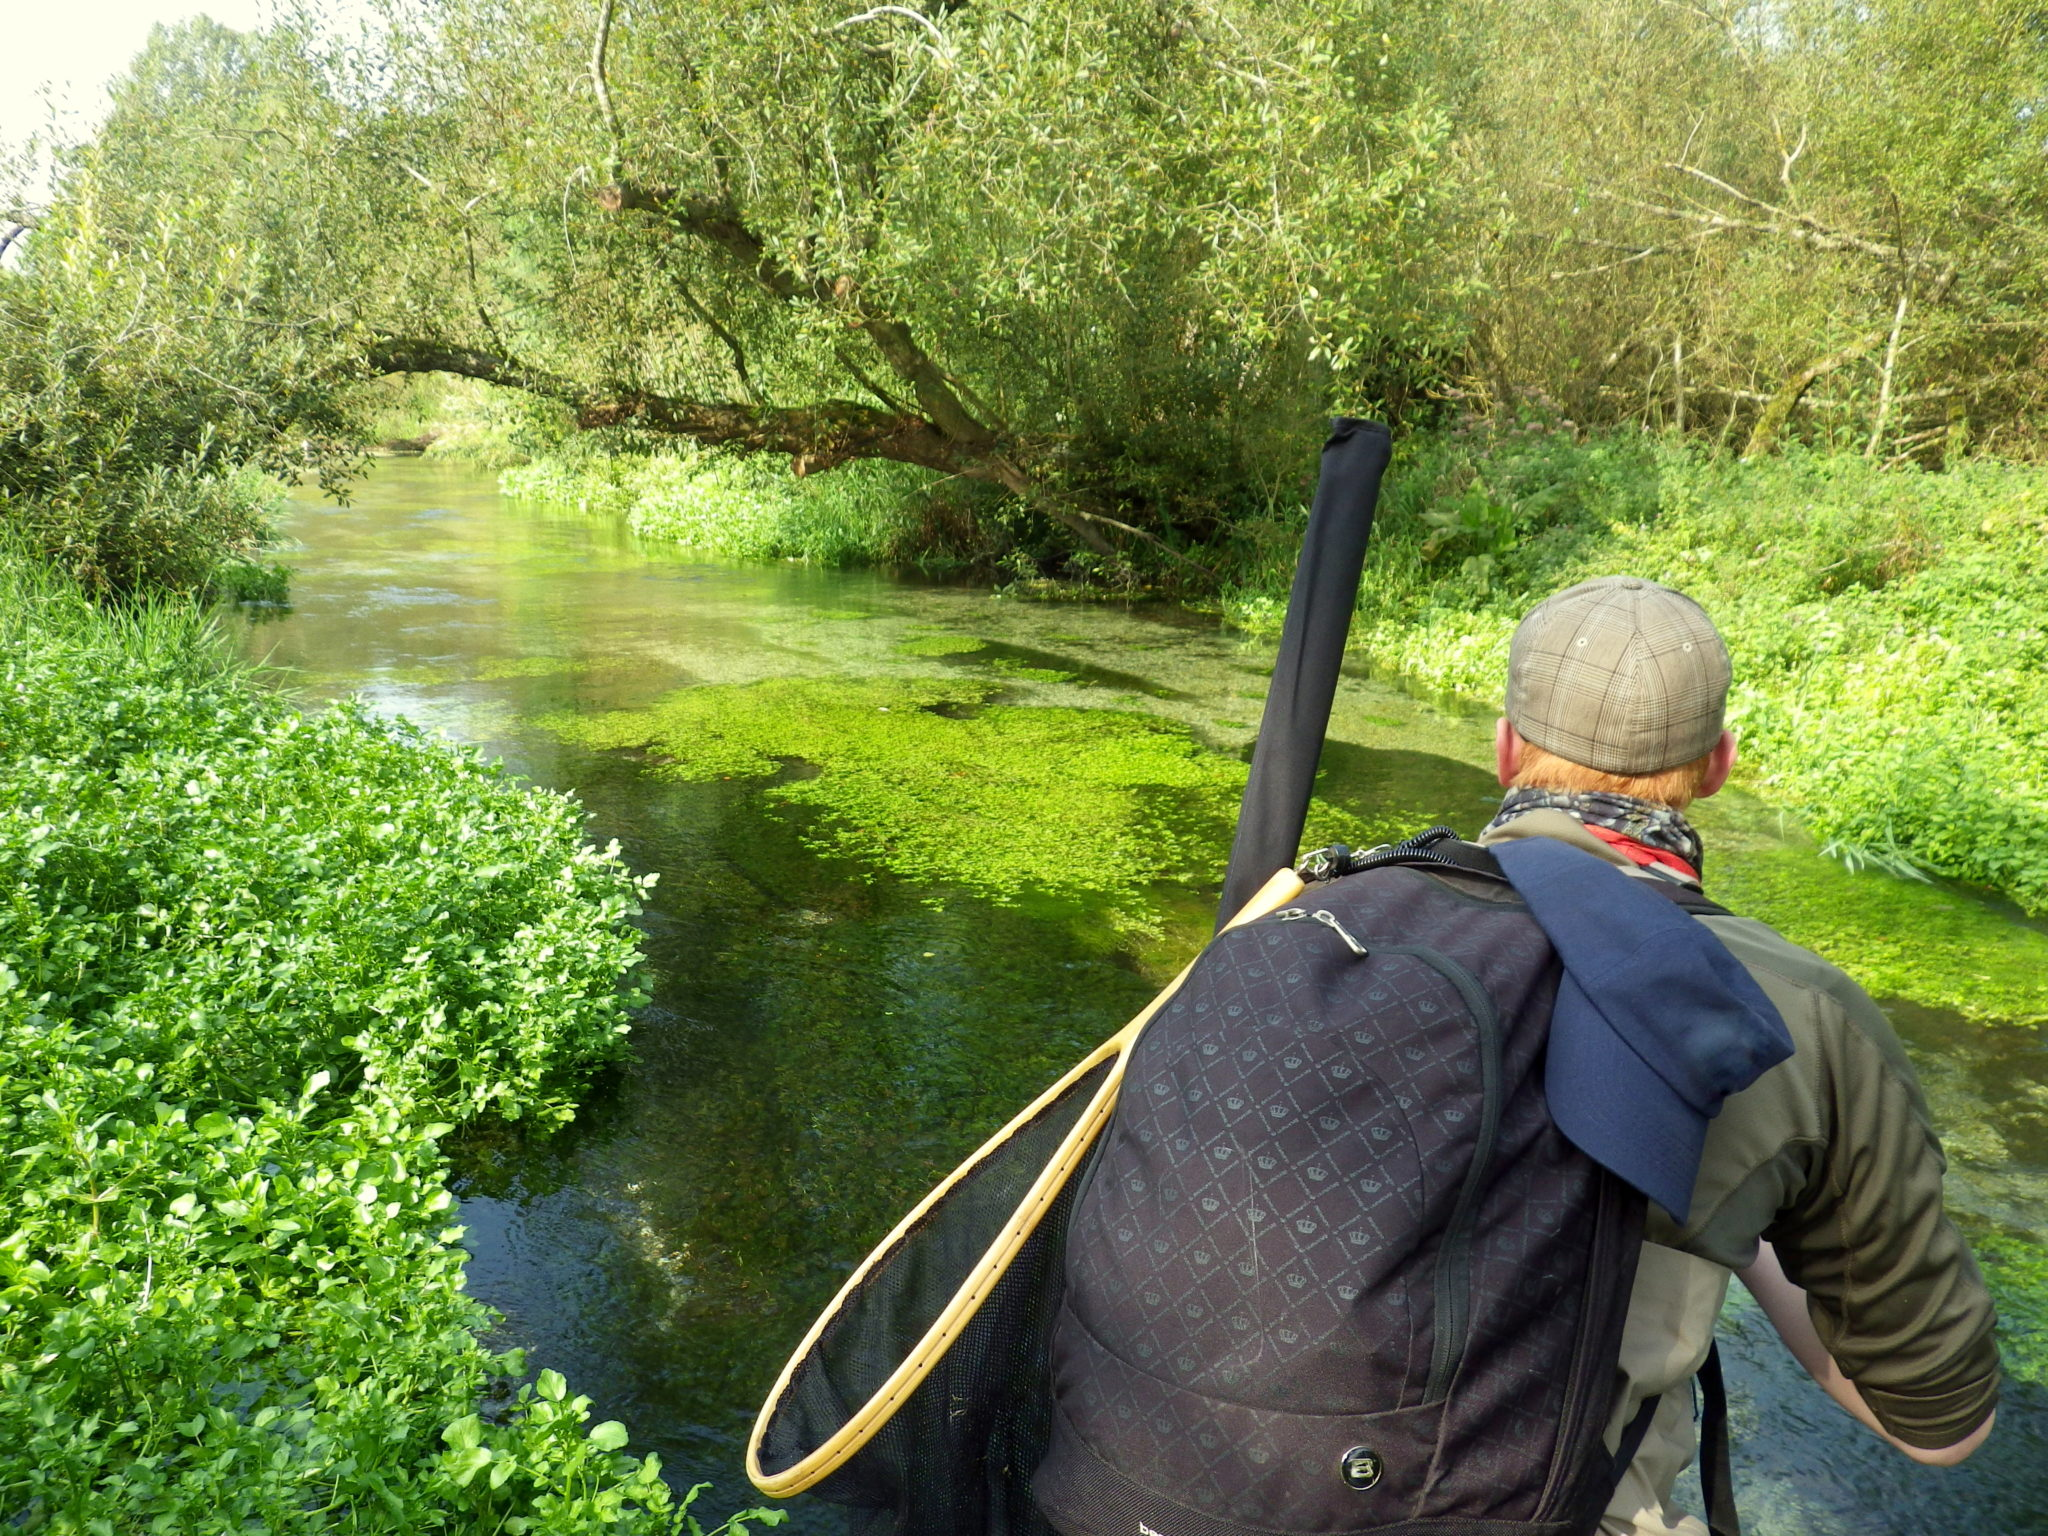 Bourne Rivulet, Hampshire chalkstream fishing, trout fishing, Aardvark McLeod, fishing the River Test